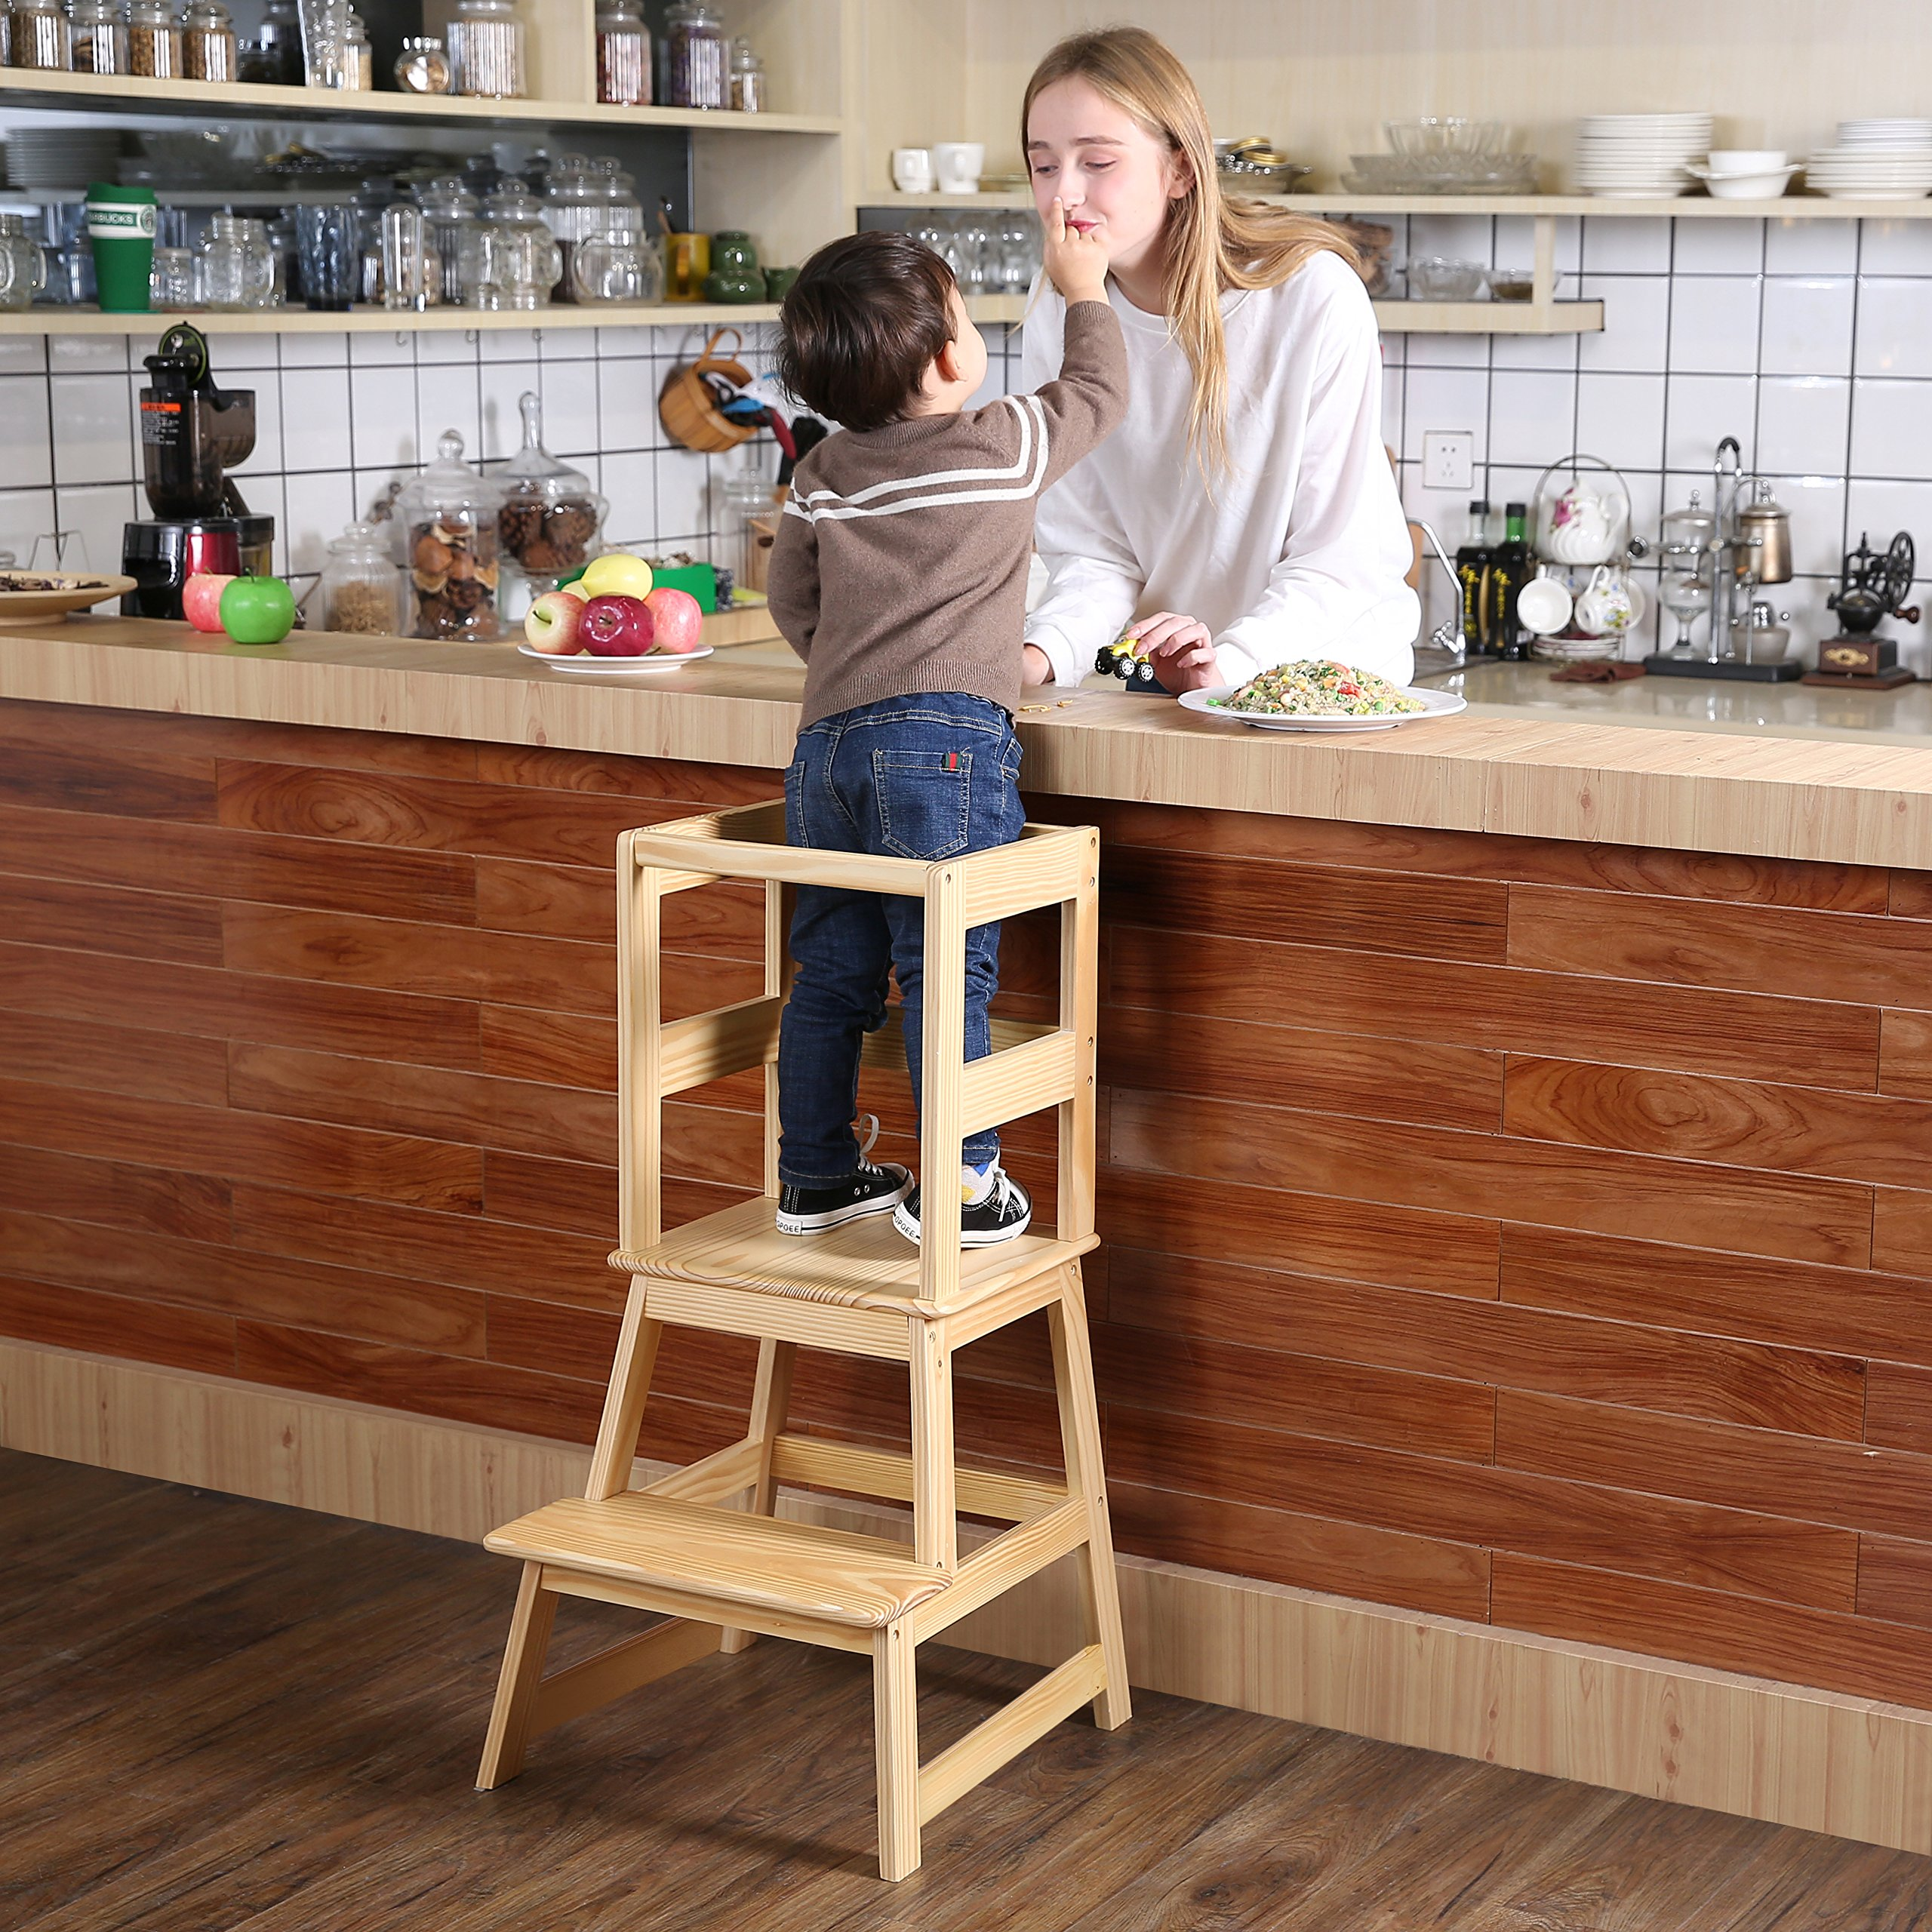 SDADI Kids Kitchen Step Stool with Safety Rail CPSC Certified - for Toddlers 18 Months and Older, Natural LT01N by SDADI